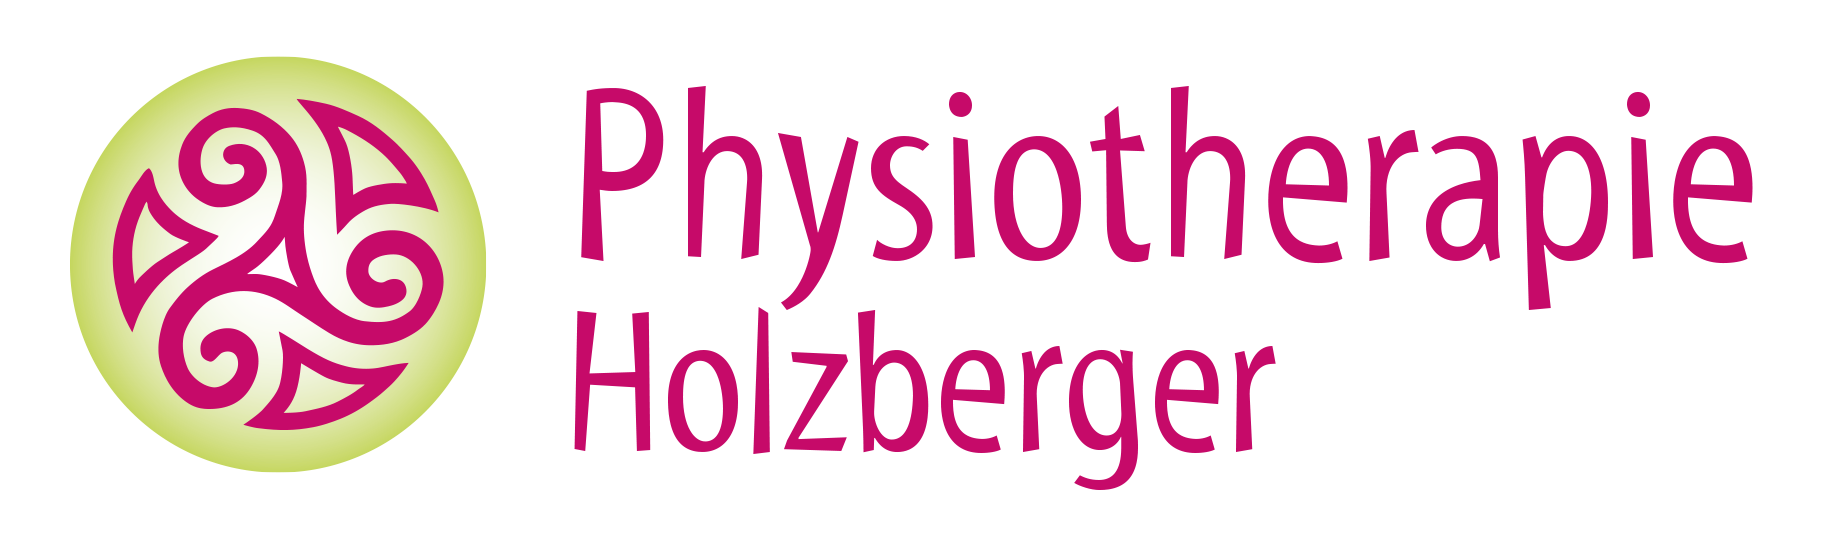 Physiotherapie Holzberger